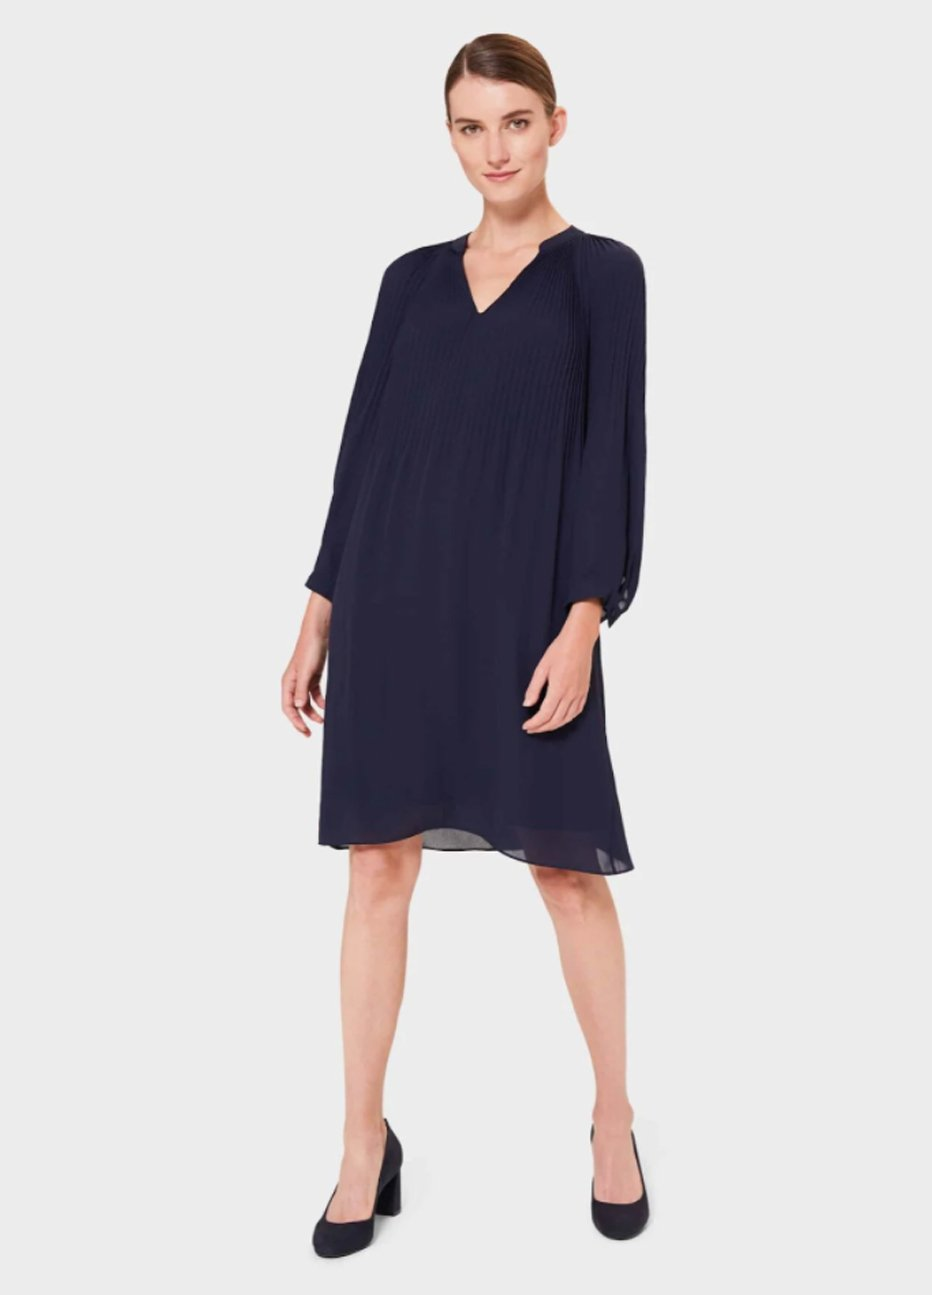 Black tunic dress with block heeled court shoes in black by Hobbs.